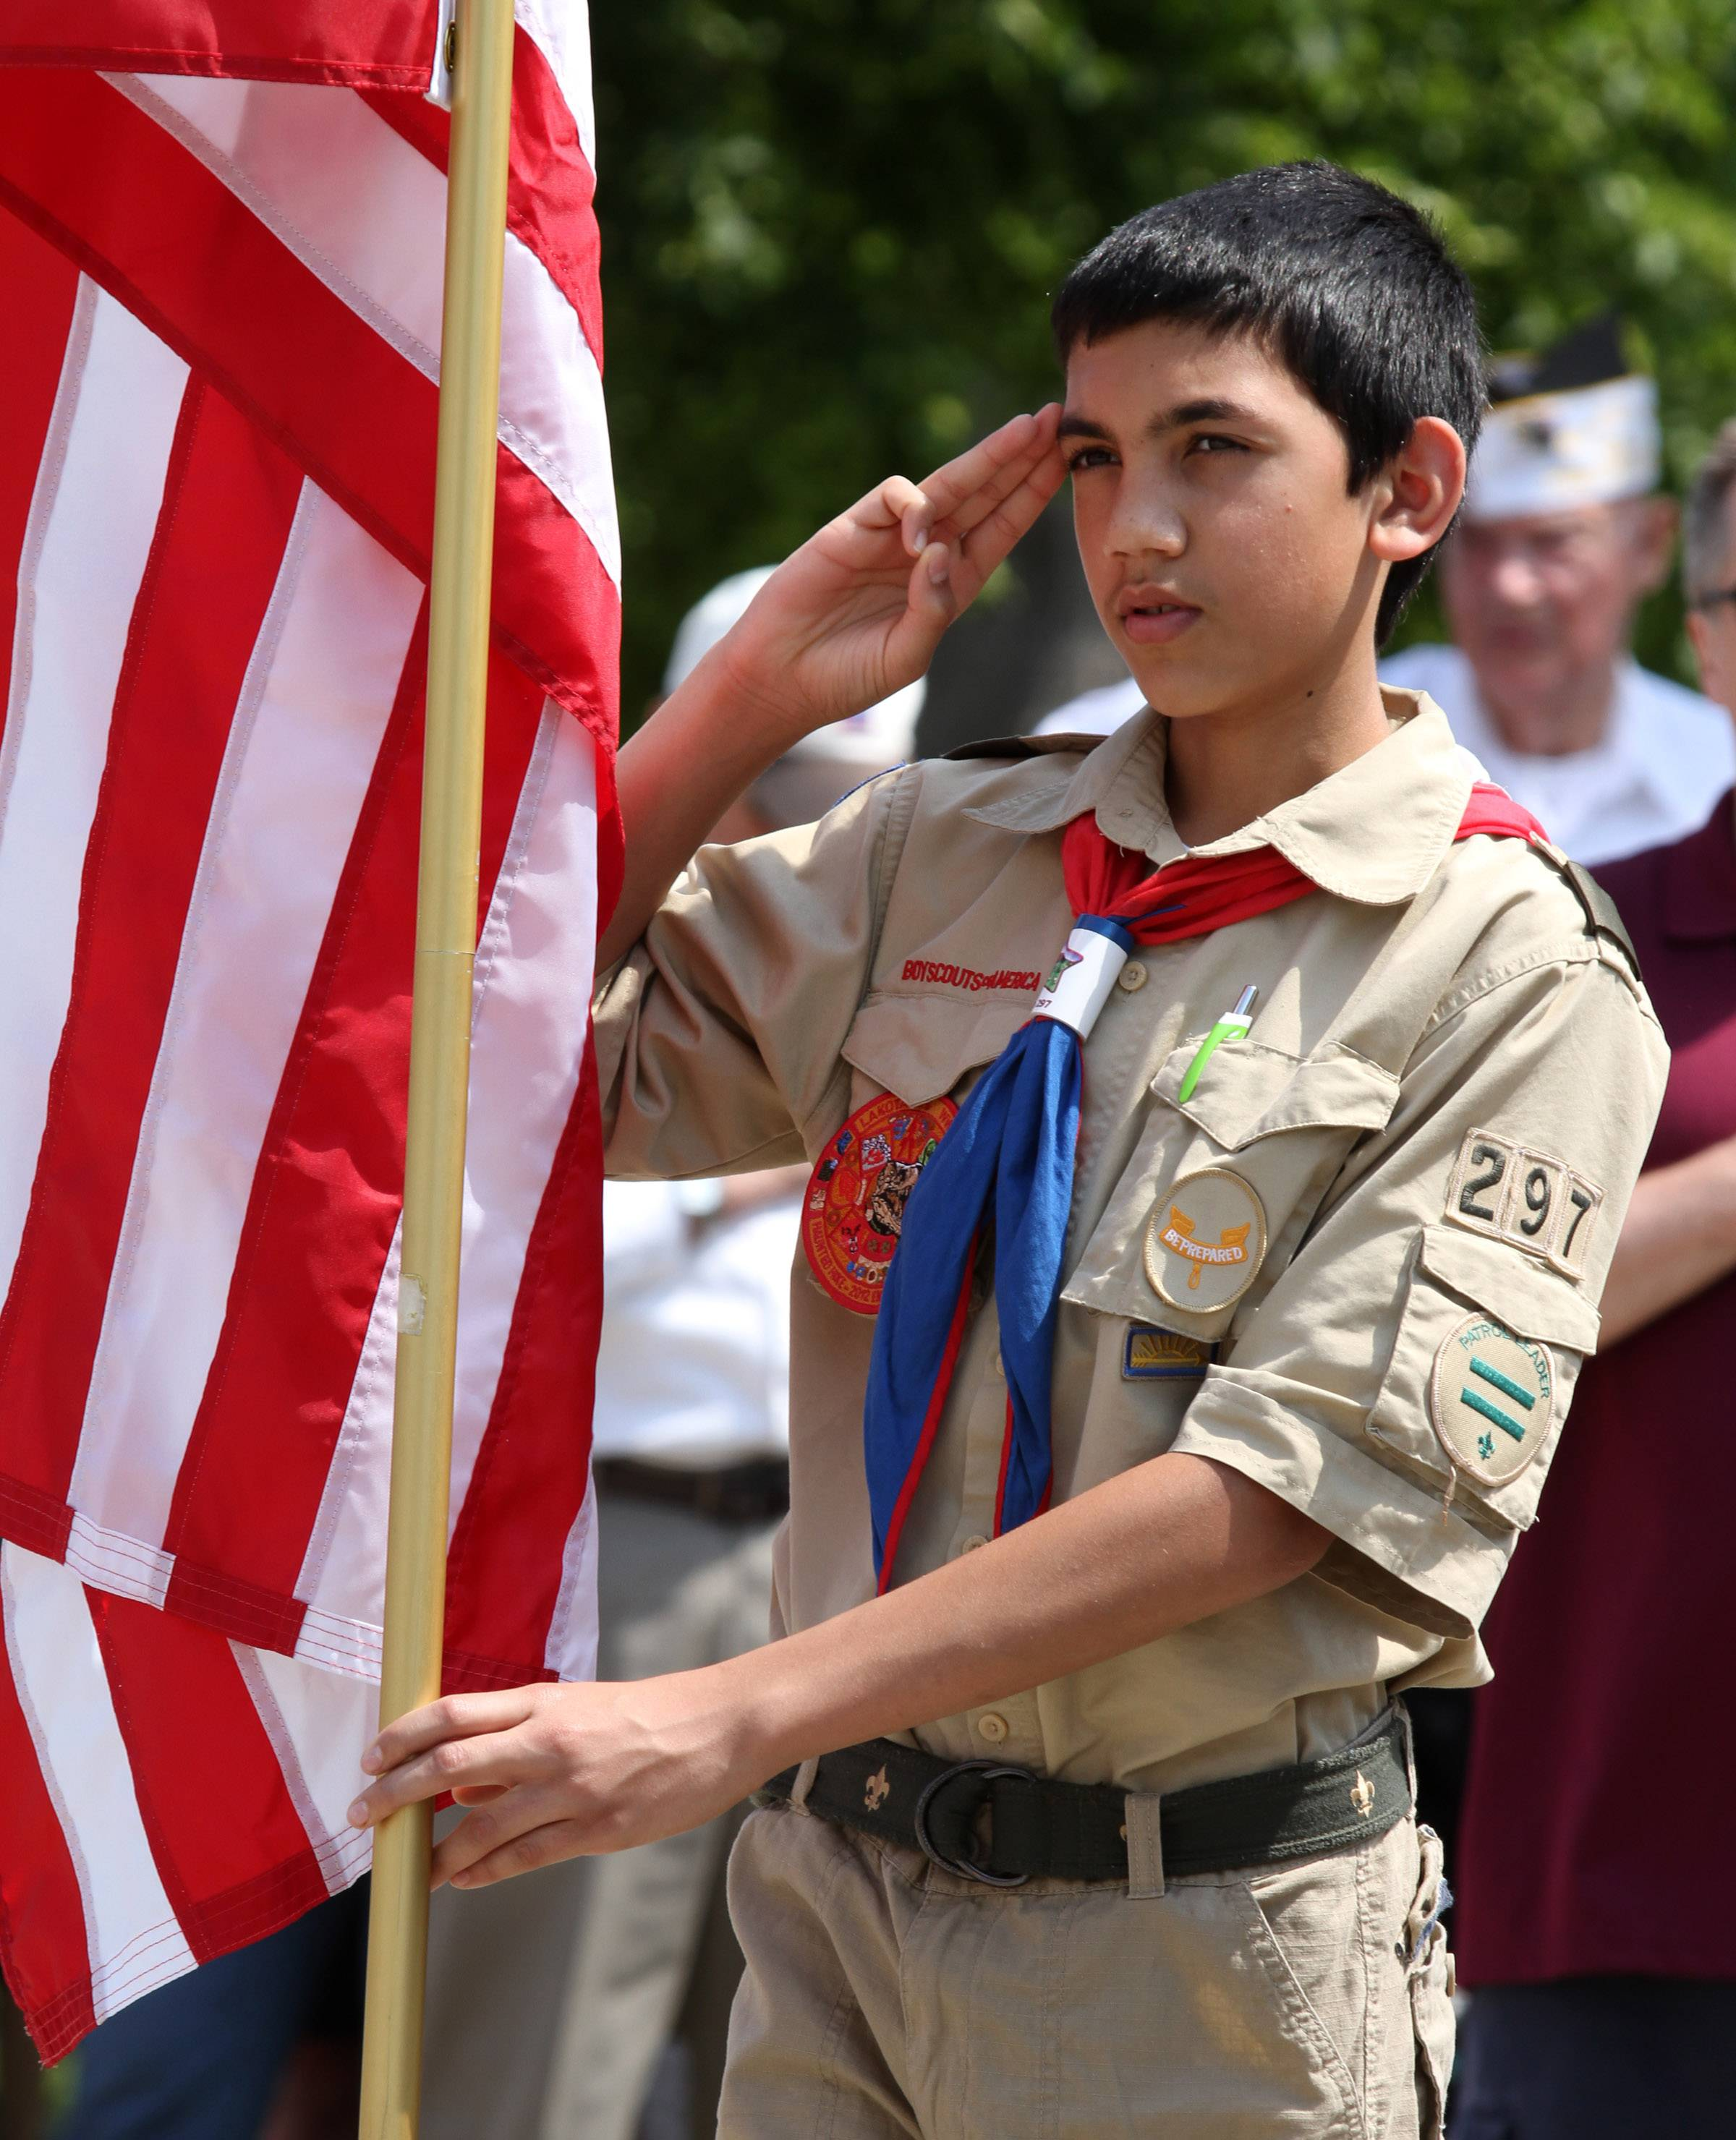 Boy Scout Luke Schmidt with troop 297 salutes during a Memorial Day ceremony in St. Peter Lutheran Cemetery in Schaumburg.